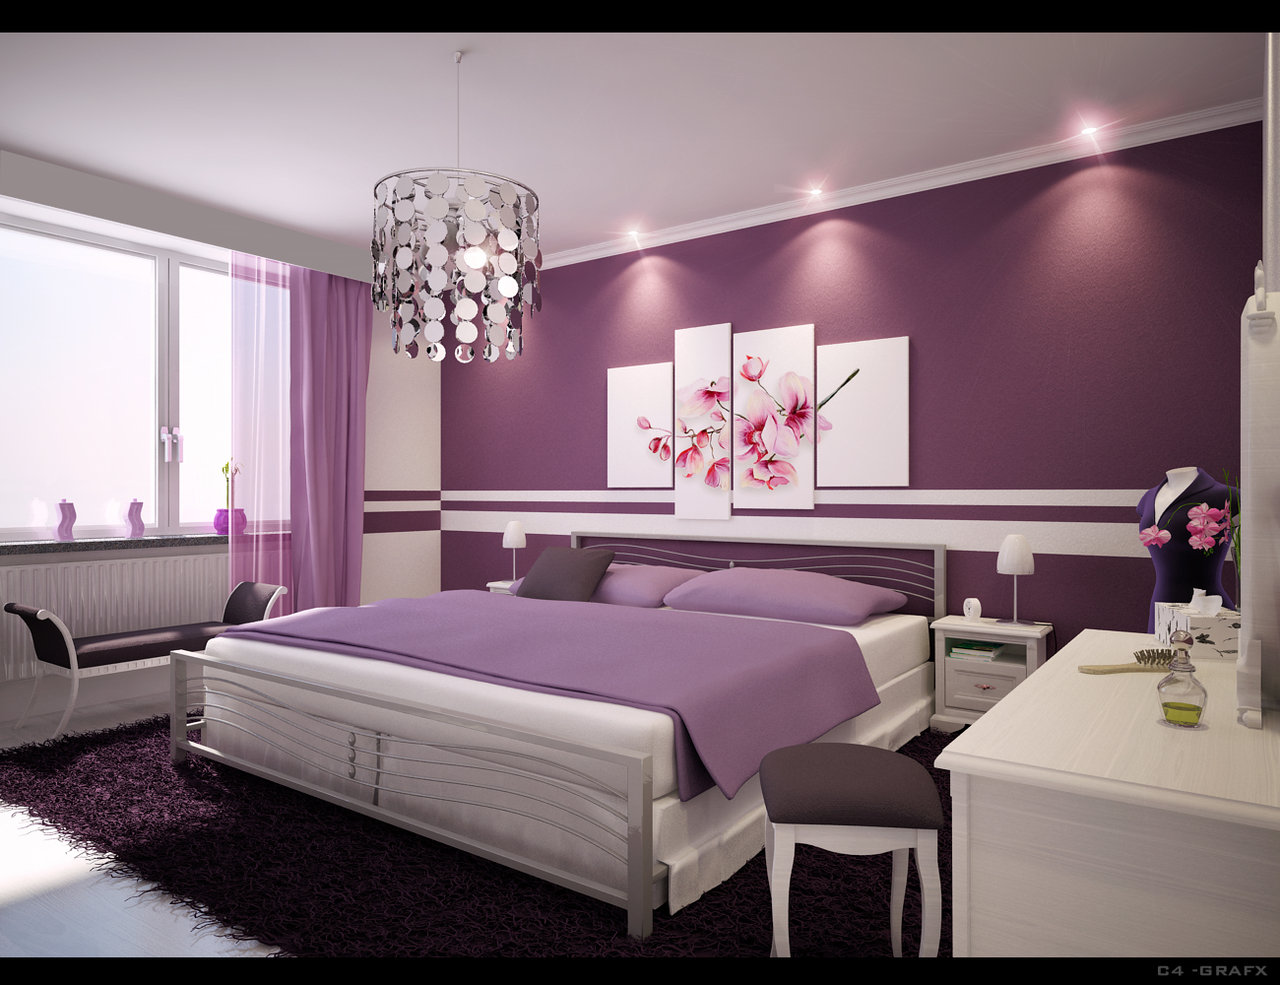 Living Room Beautiful Room Designs beautiful bedrooms purple feminine bedroom